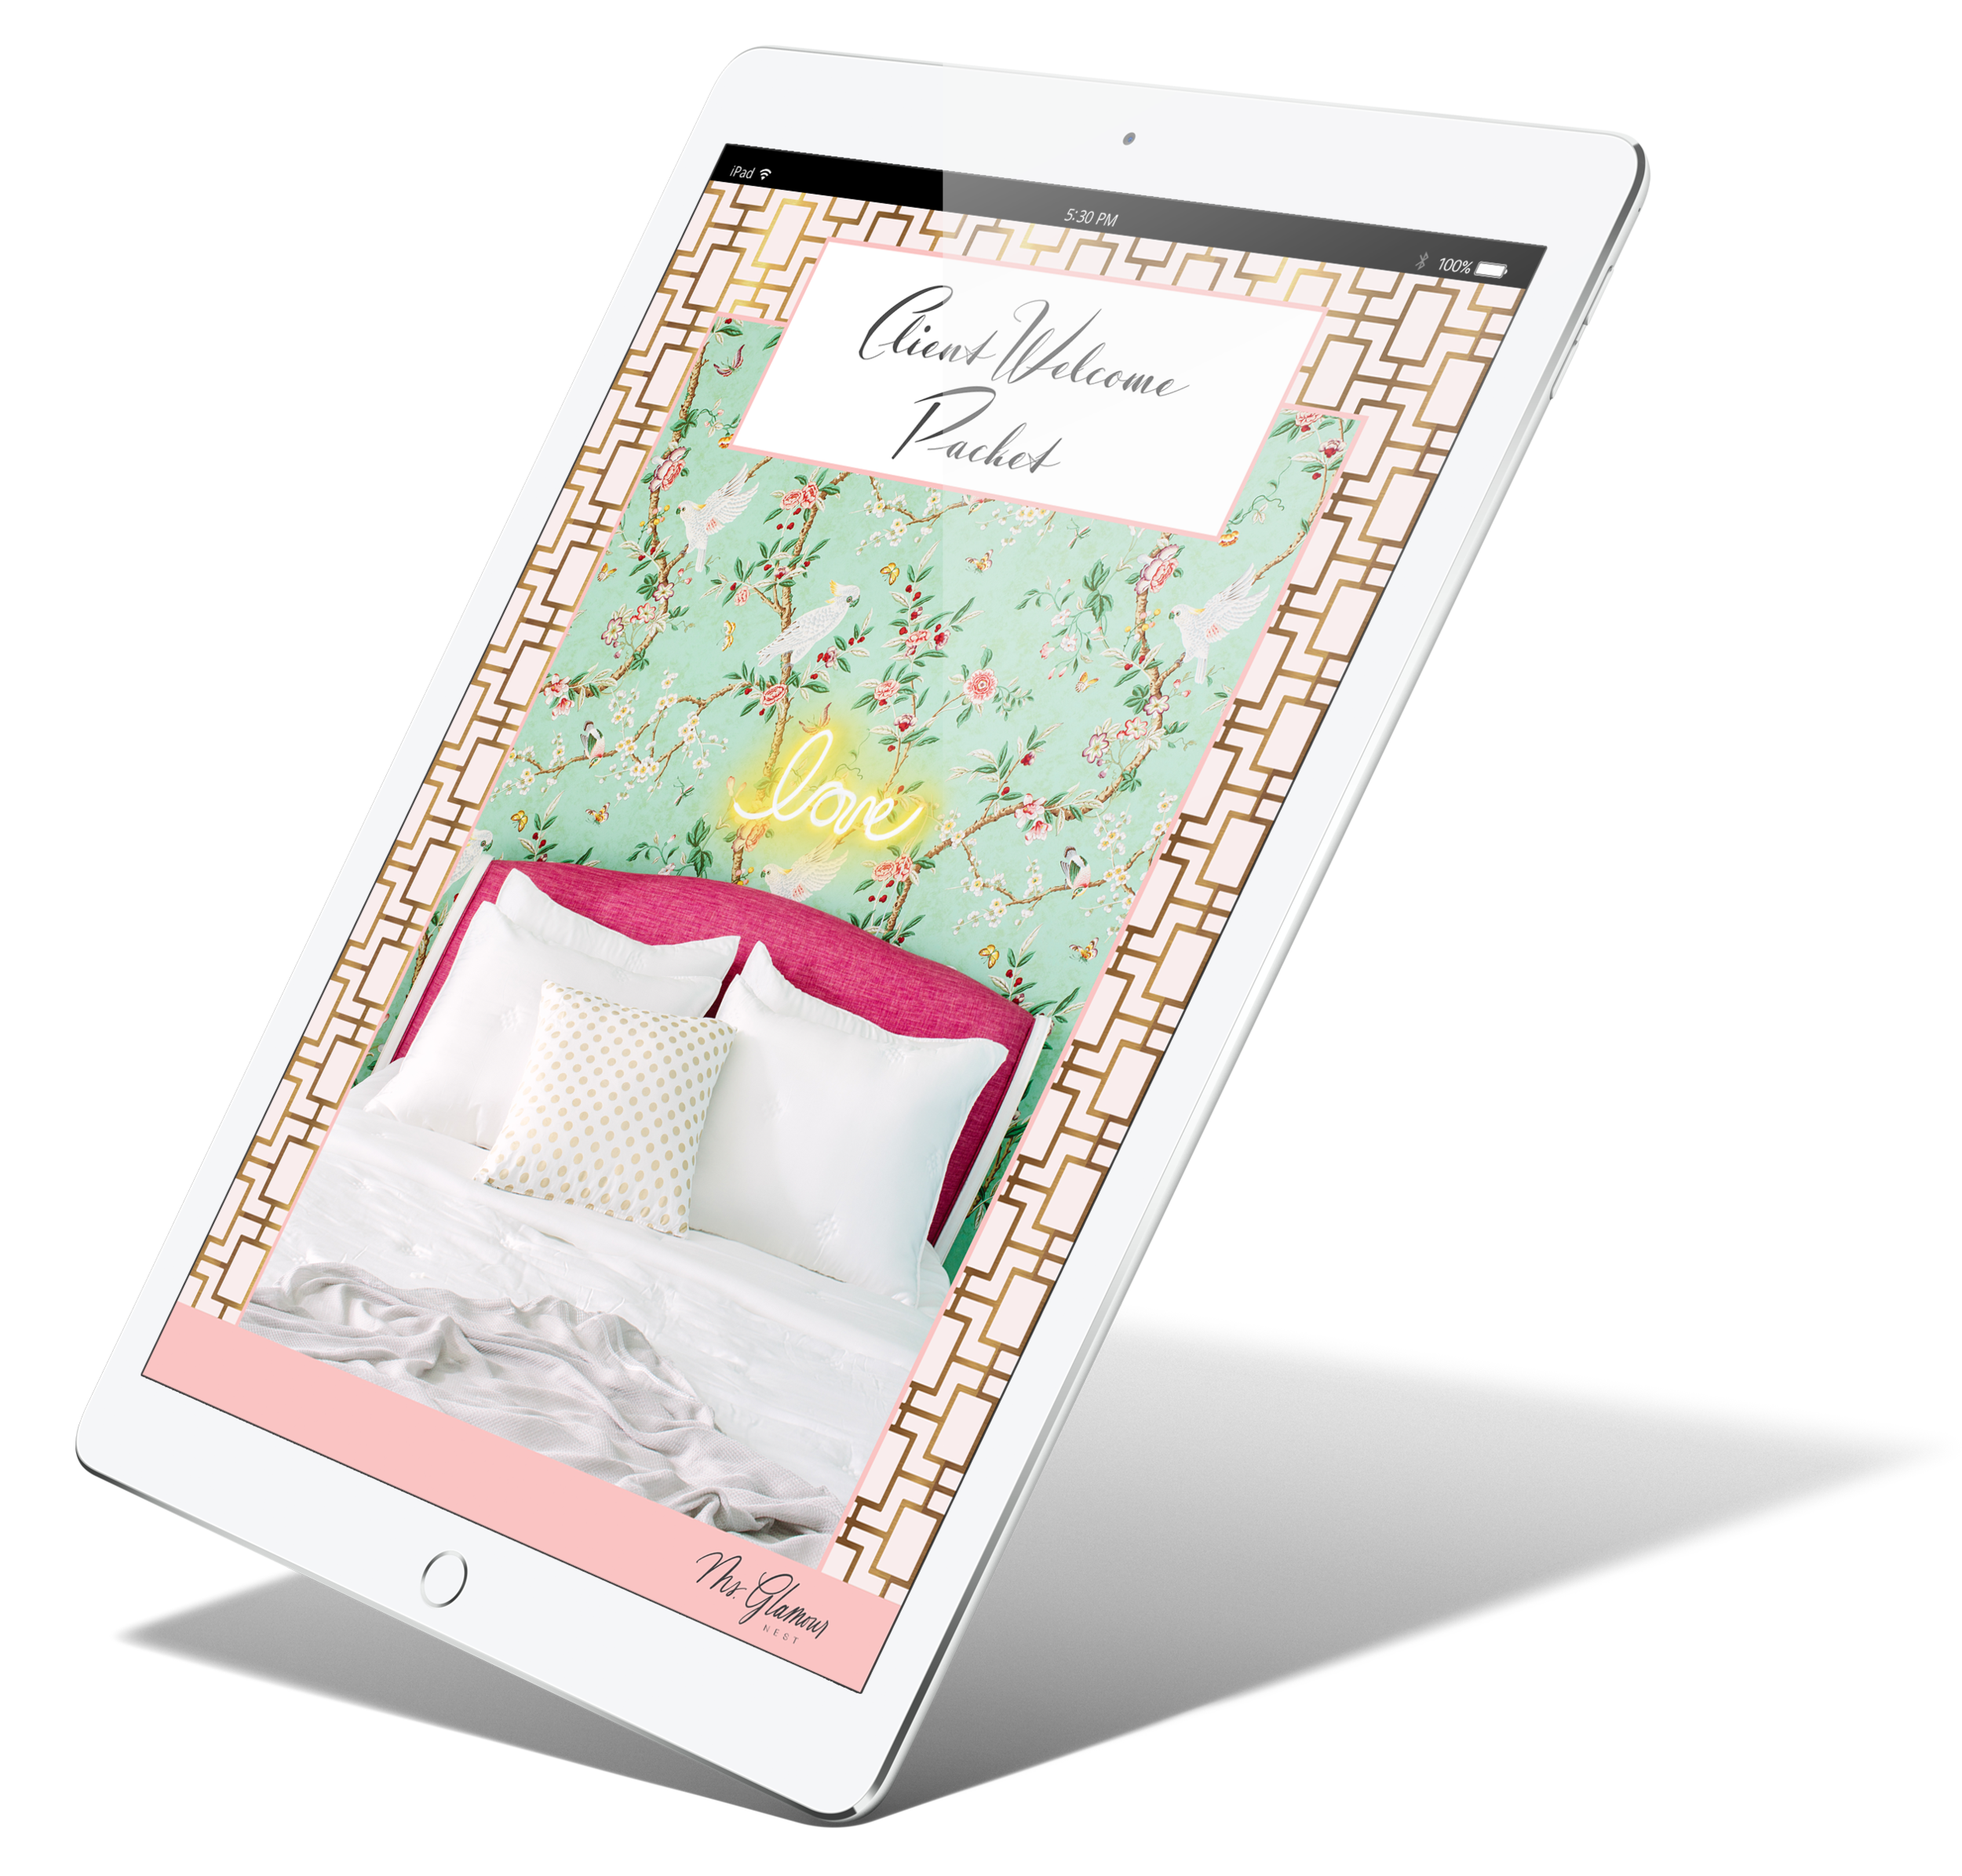 Client welcome packet templates for interior designers | Ms. Glamour Nest